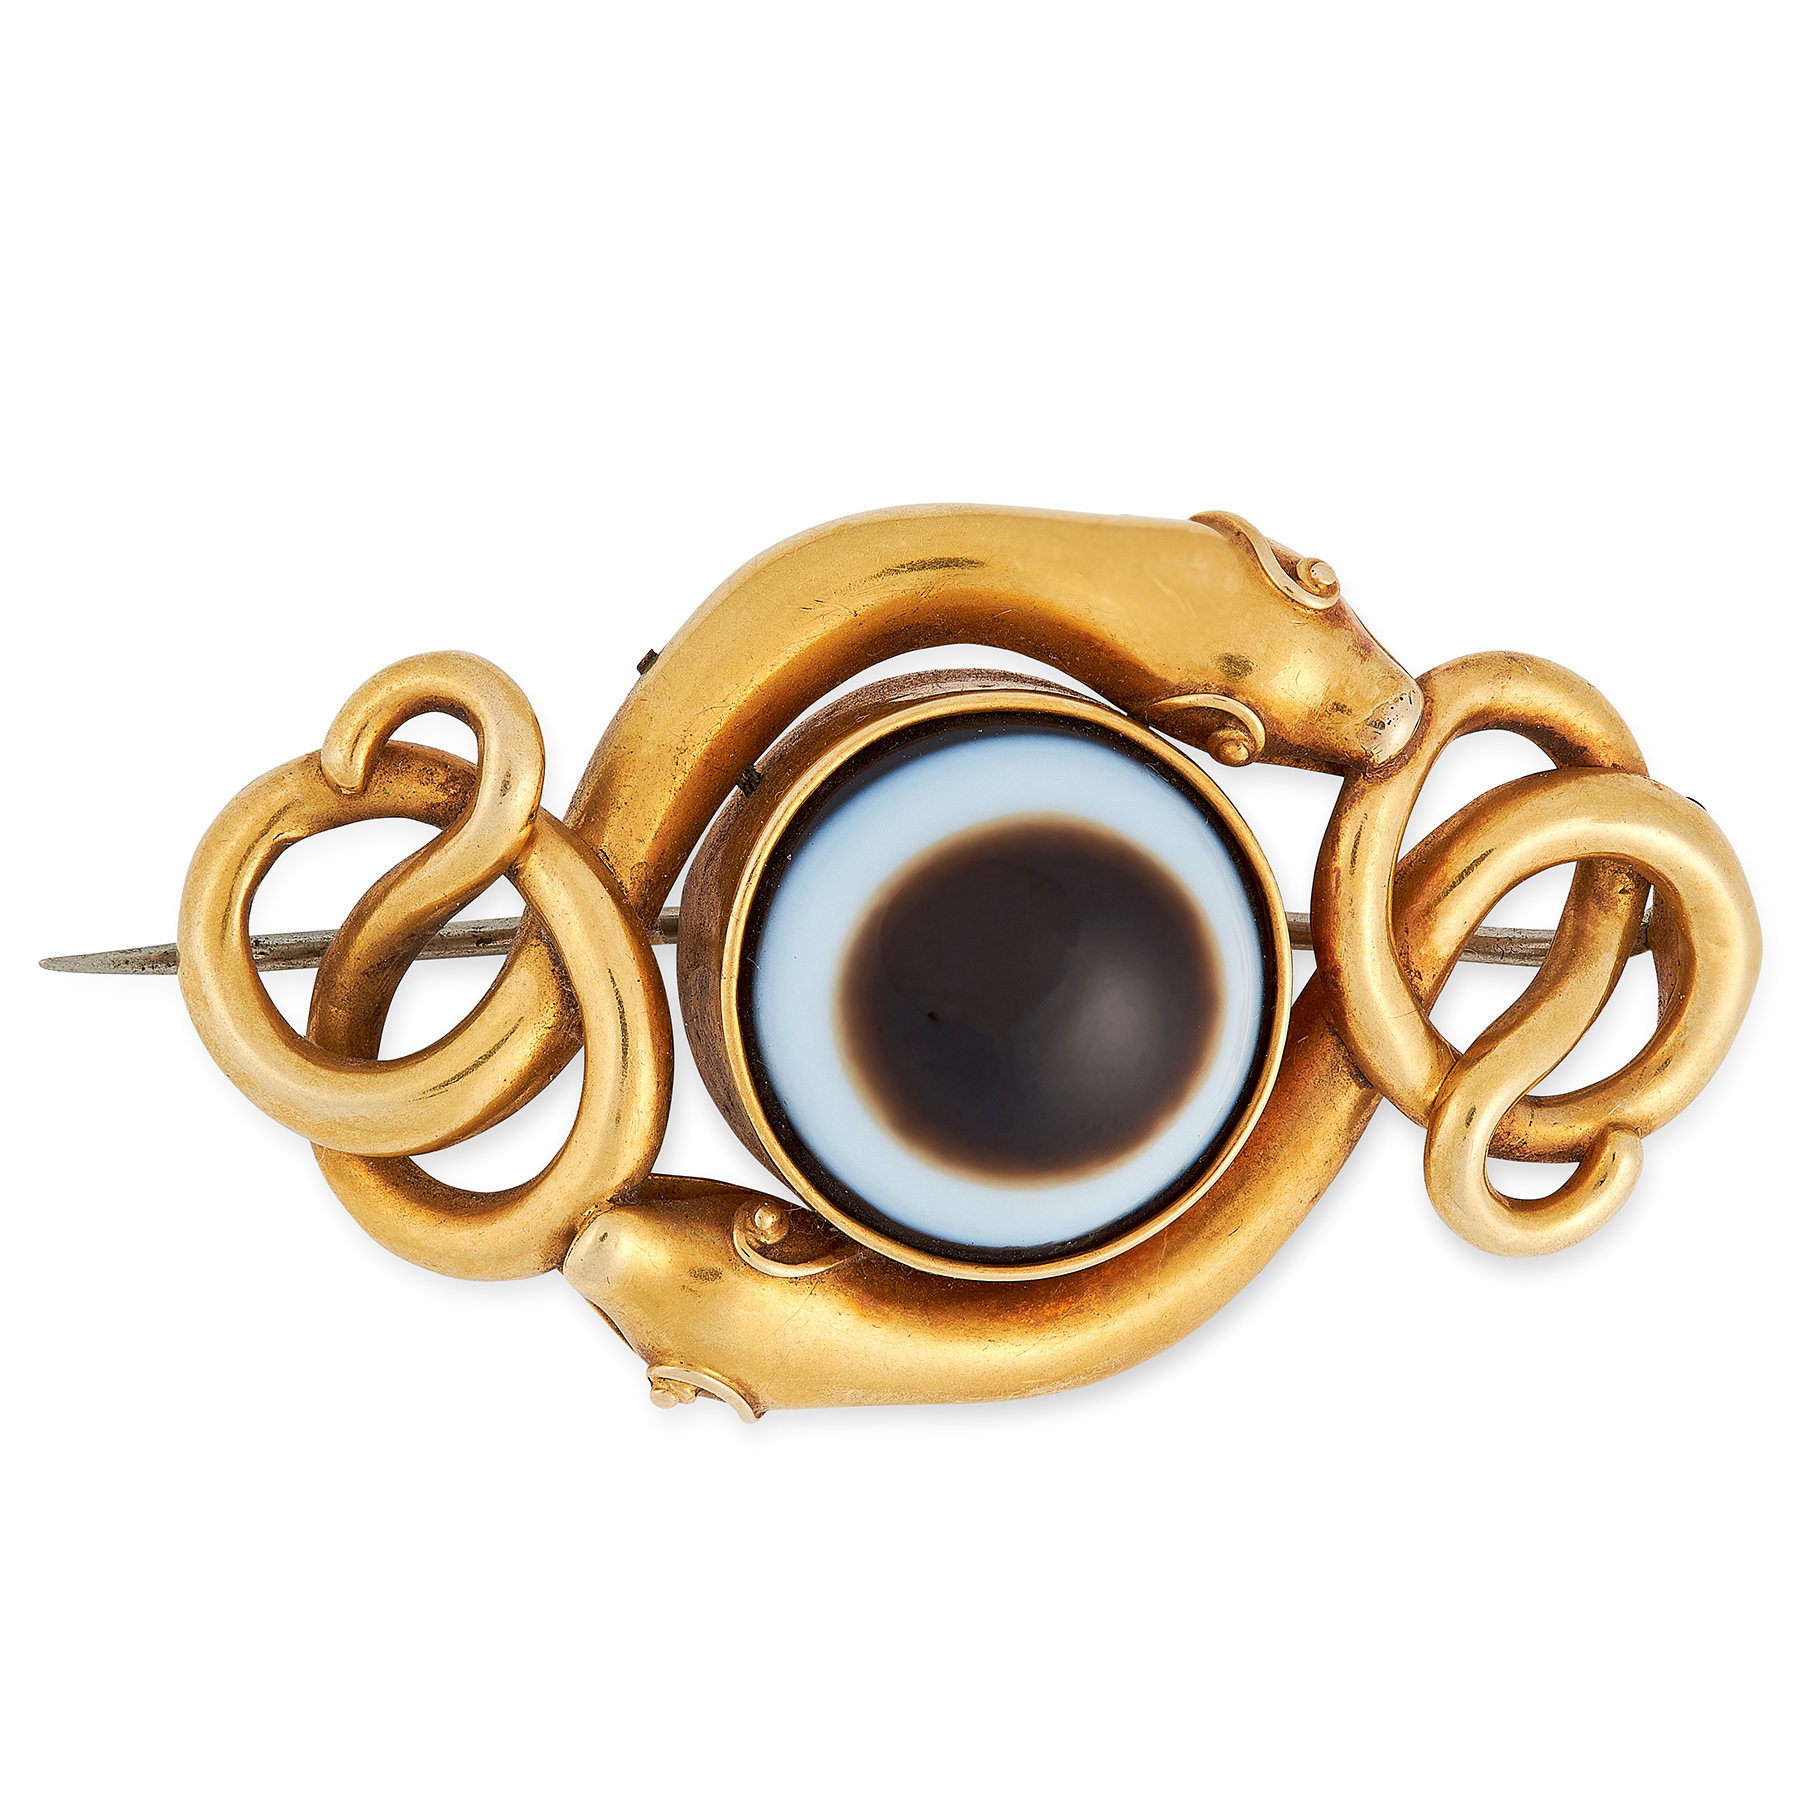 AN ANTIQUE BANDED AGATE MOURNING BROOCH, 19TH CENTURY in high carat yellow gold, set with a